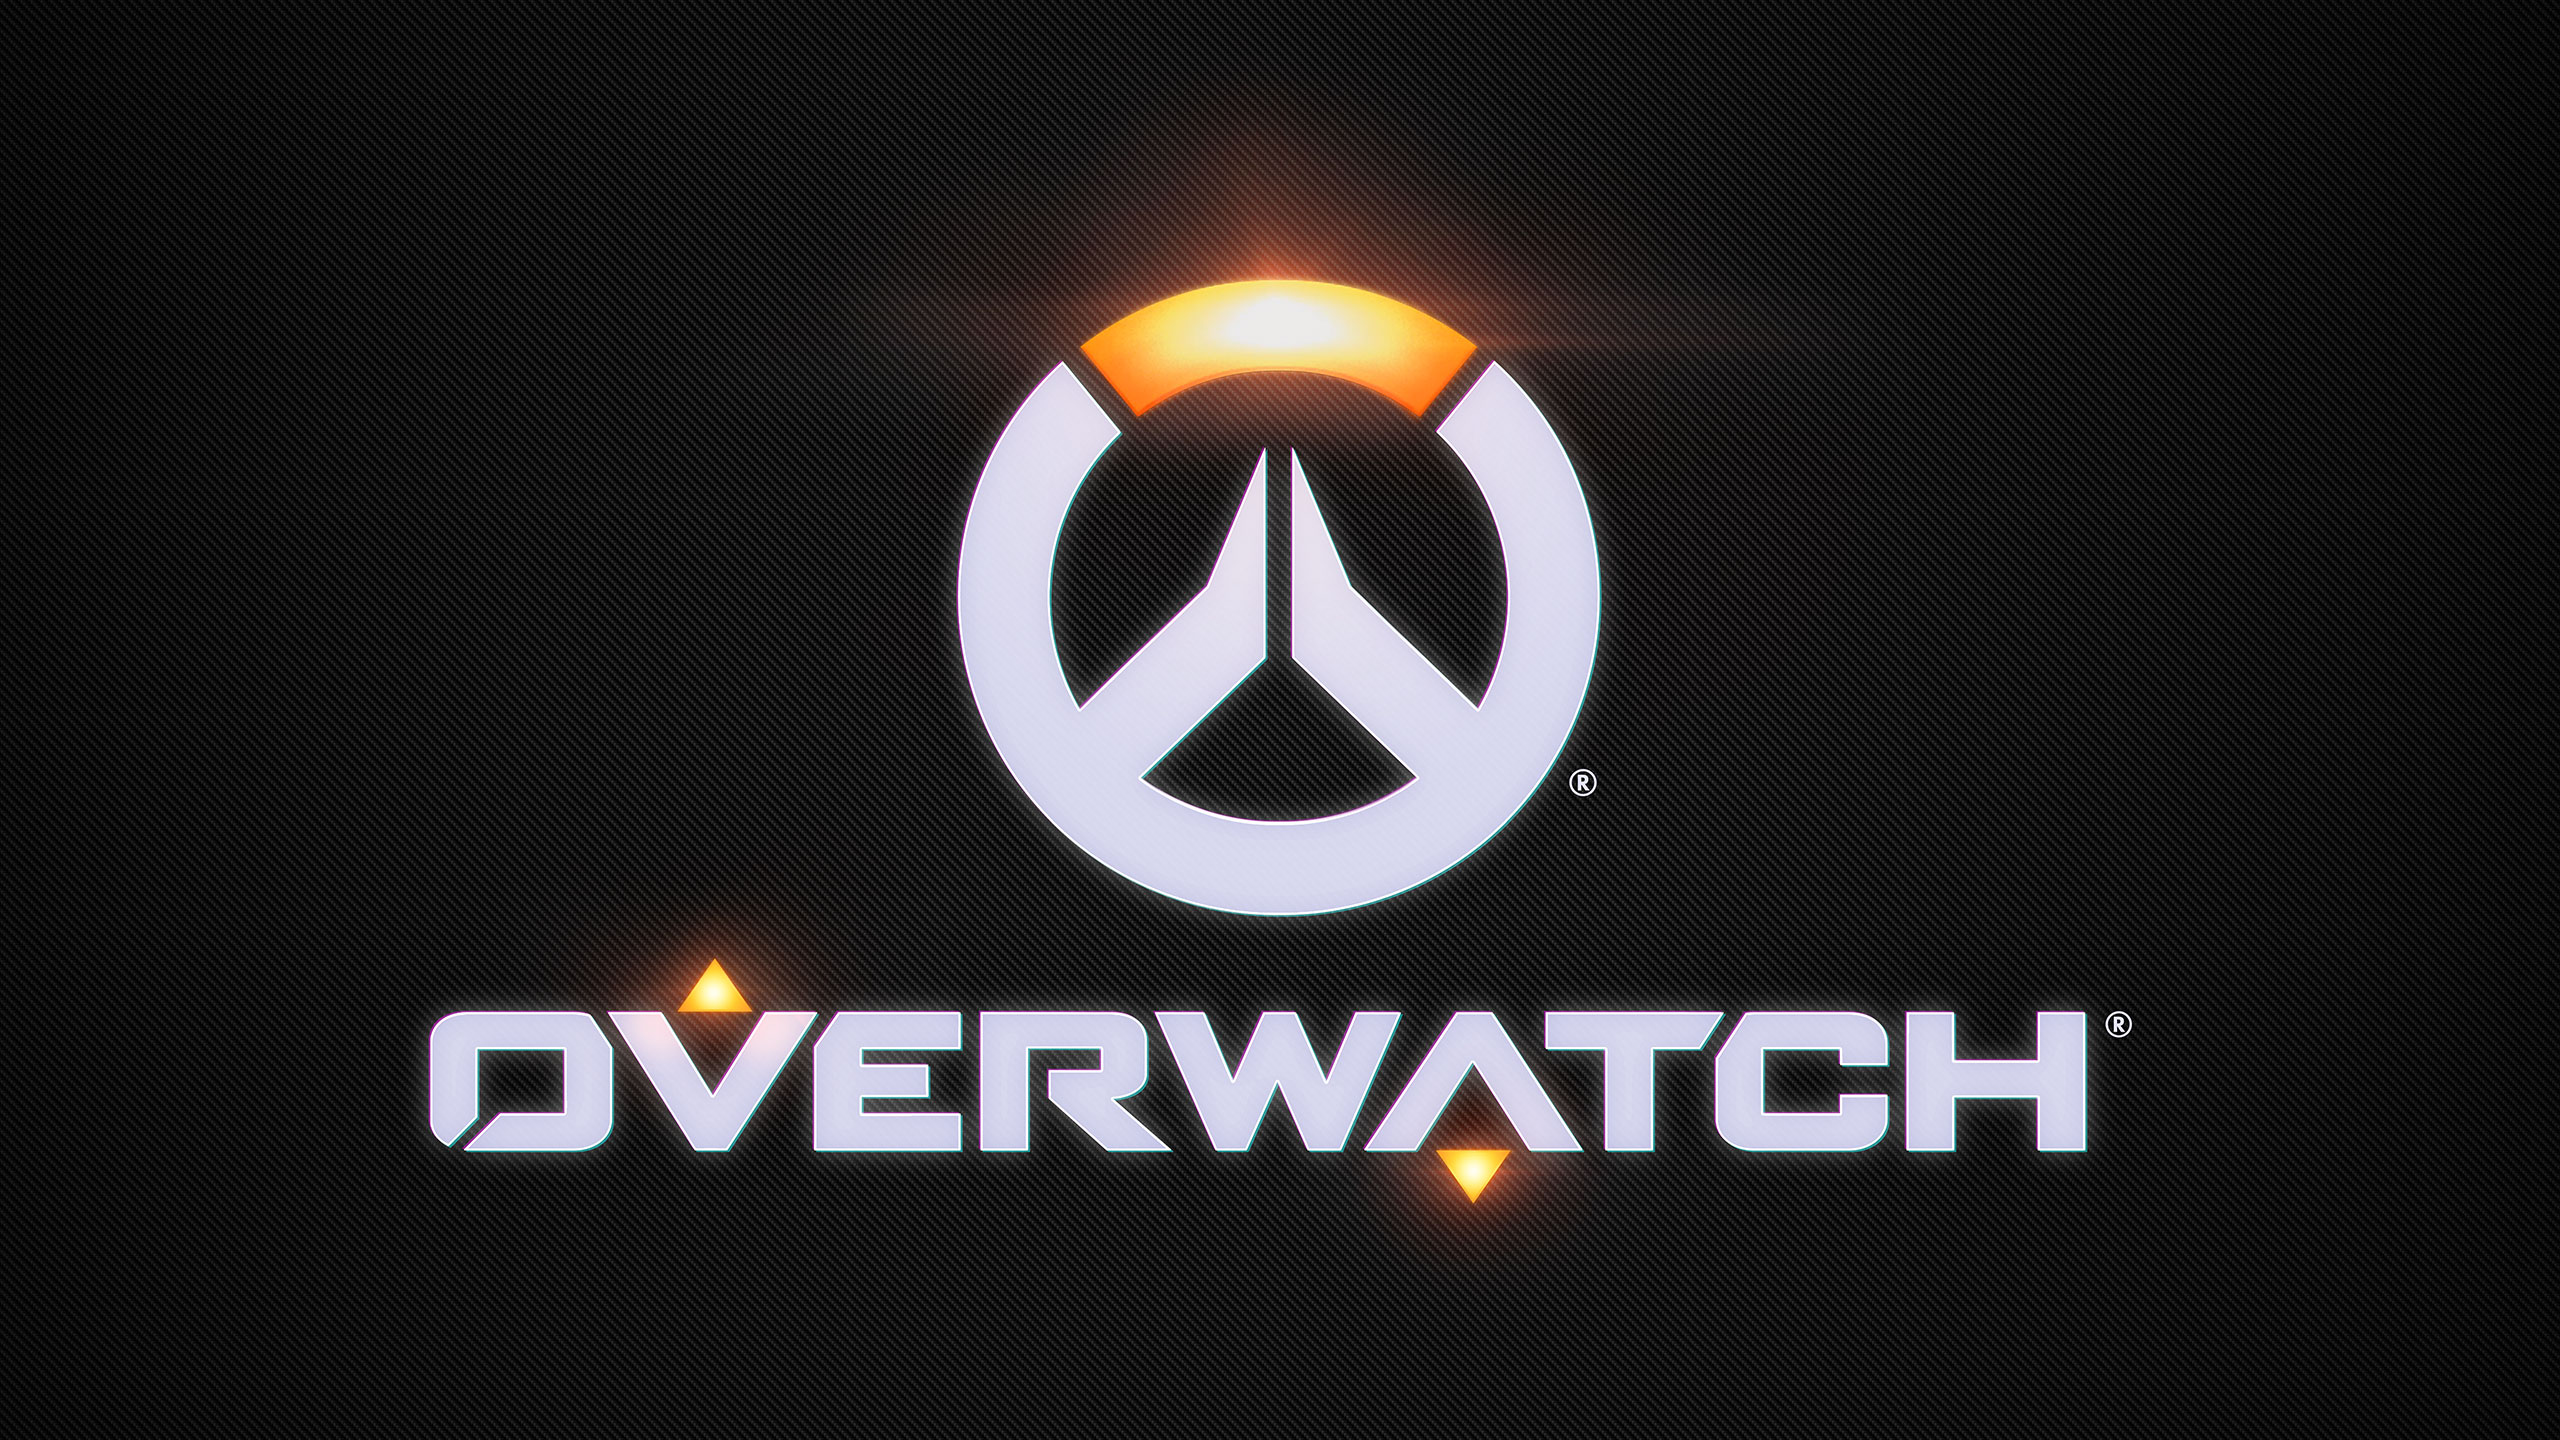 Overwatch® is the copyrighted product of Blizzard Entertainment, Inc. ©2018 Blizzard Entertainment, Inc. All rights reserved.